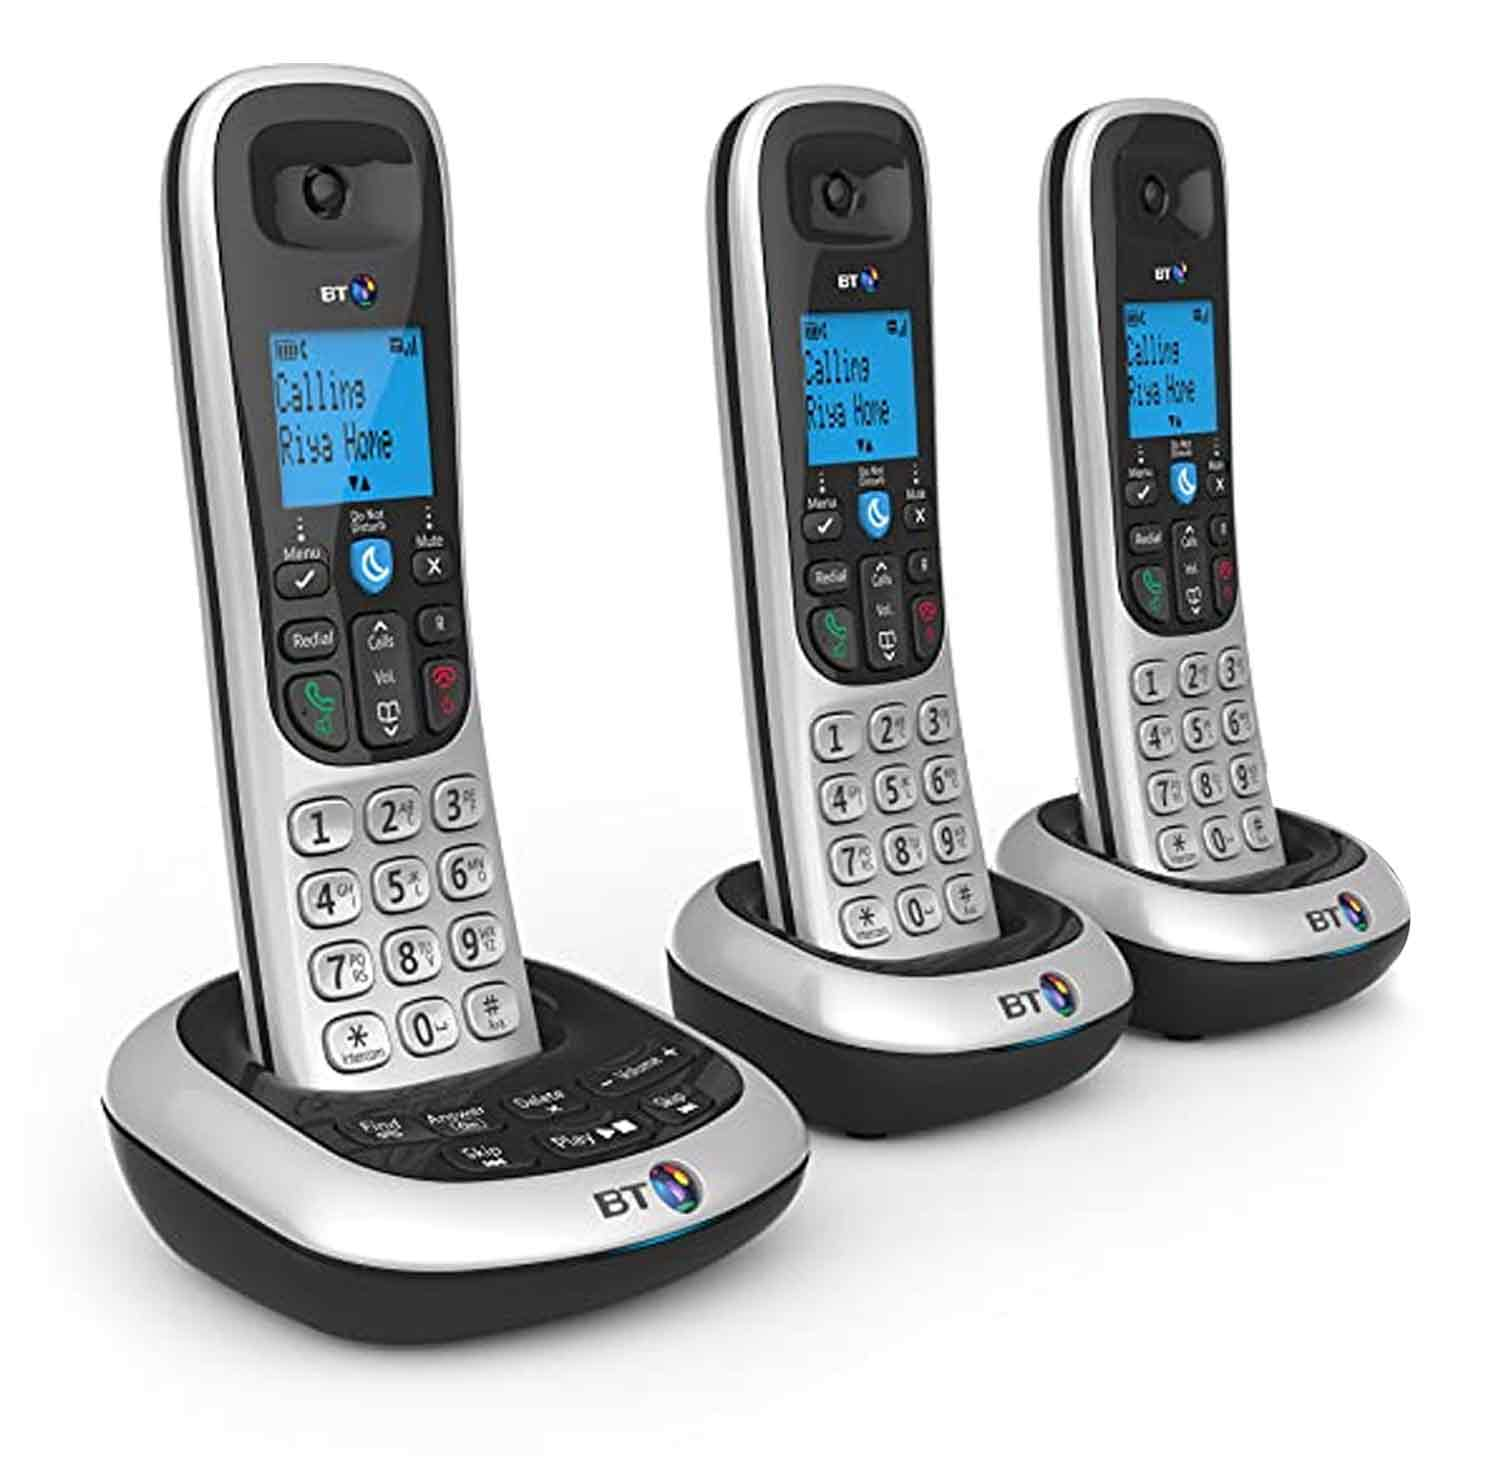 BT3 digital cordless telephone with answering machine